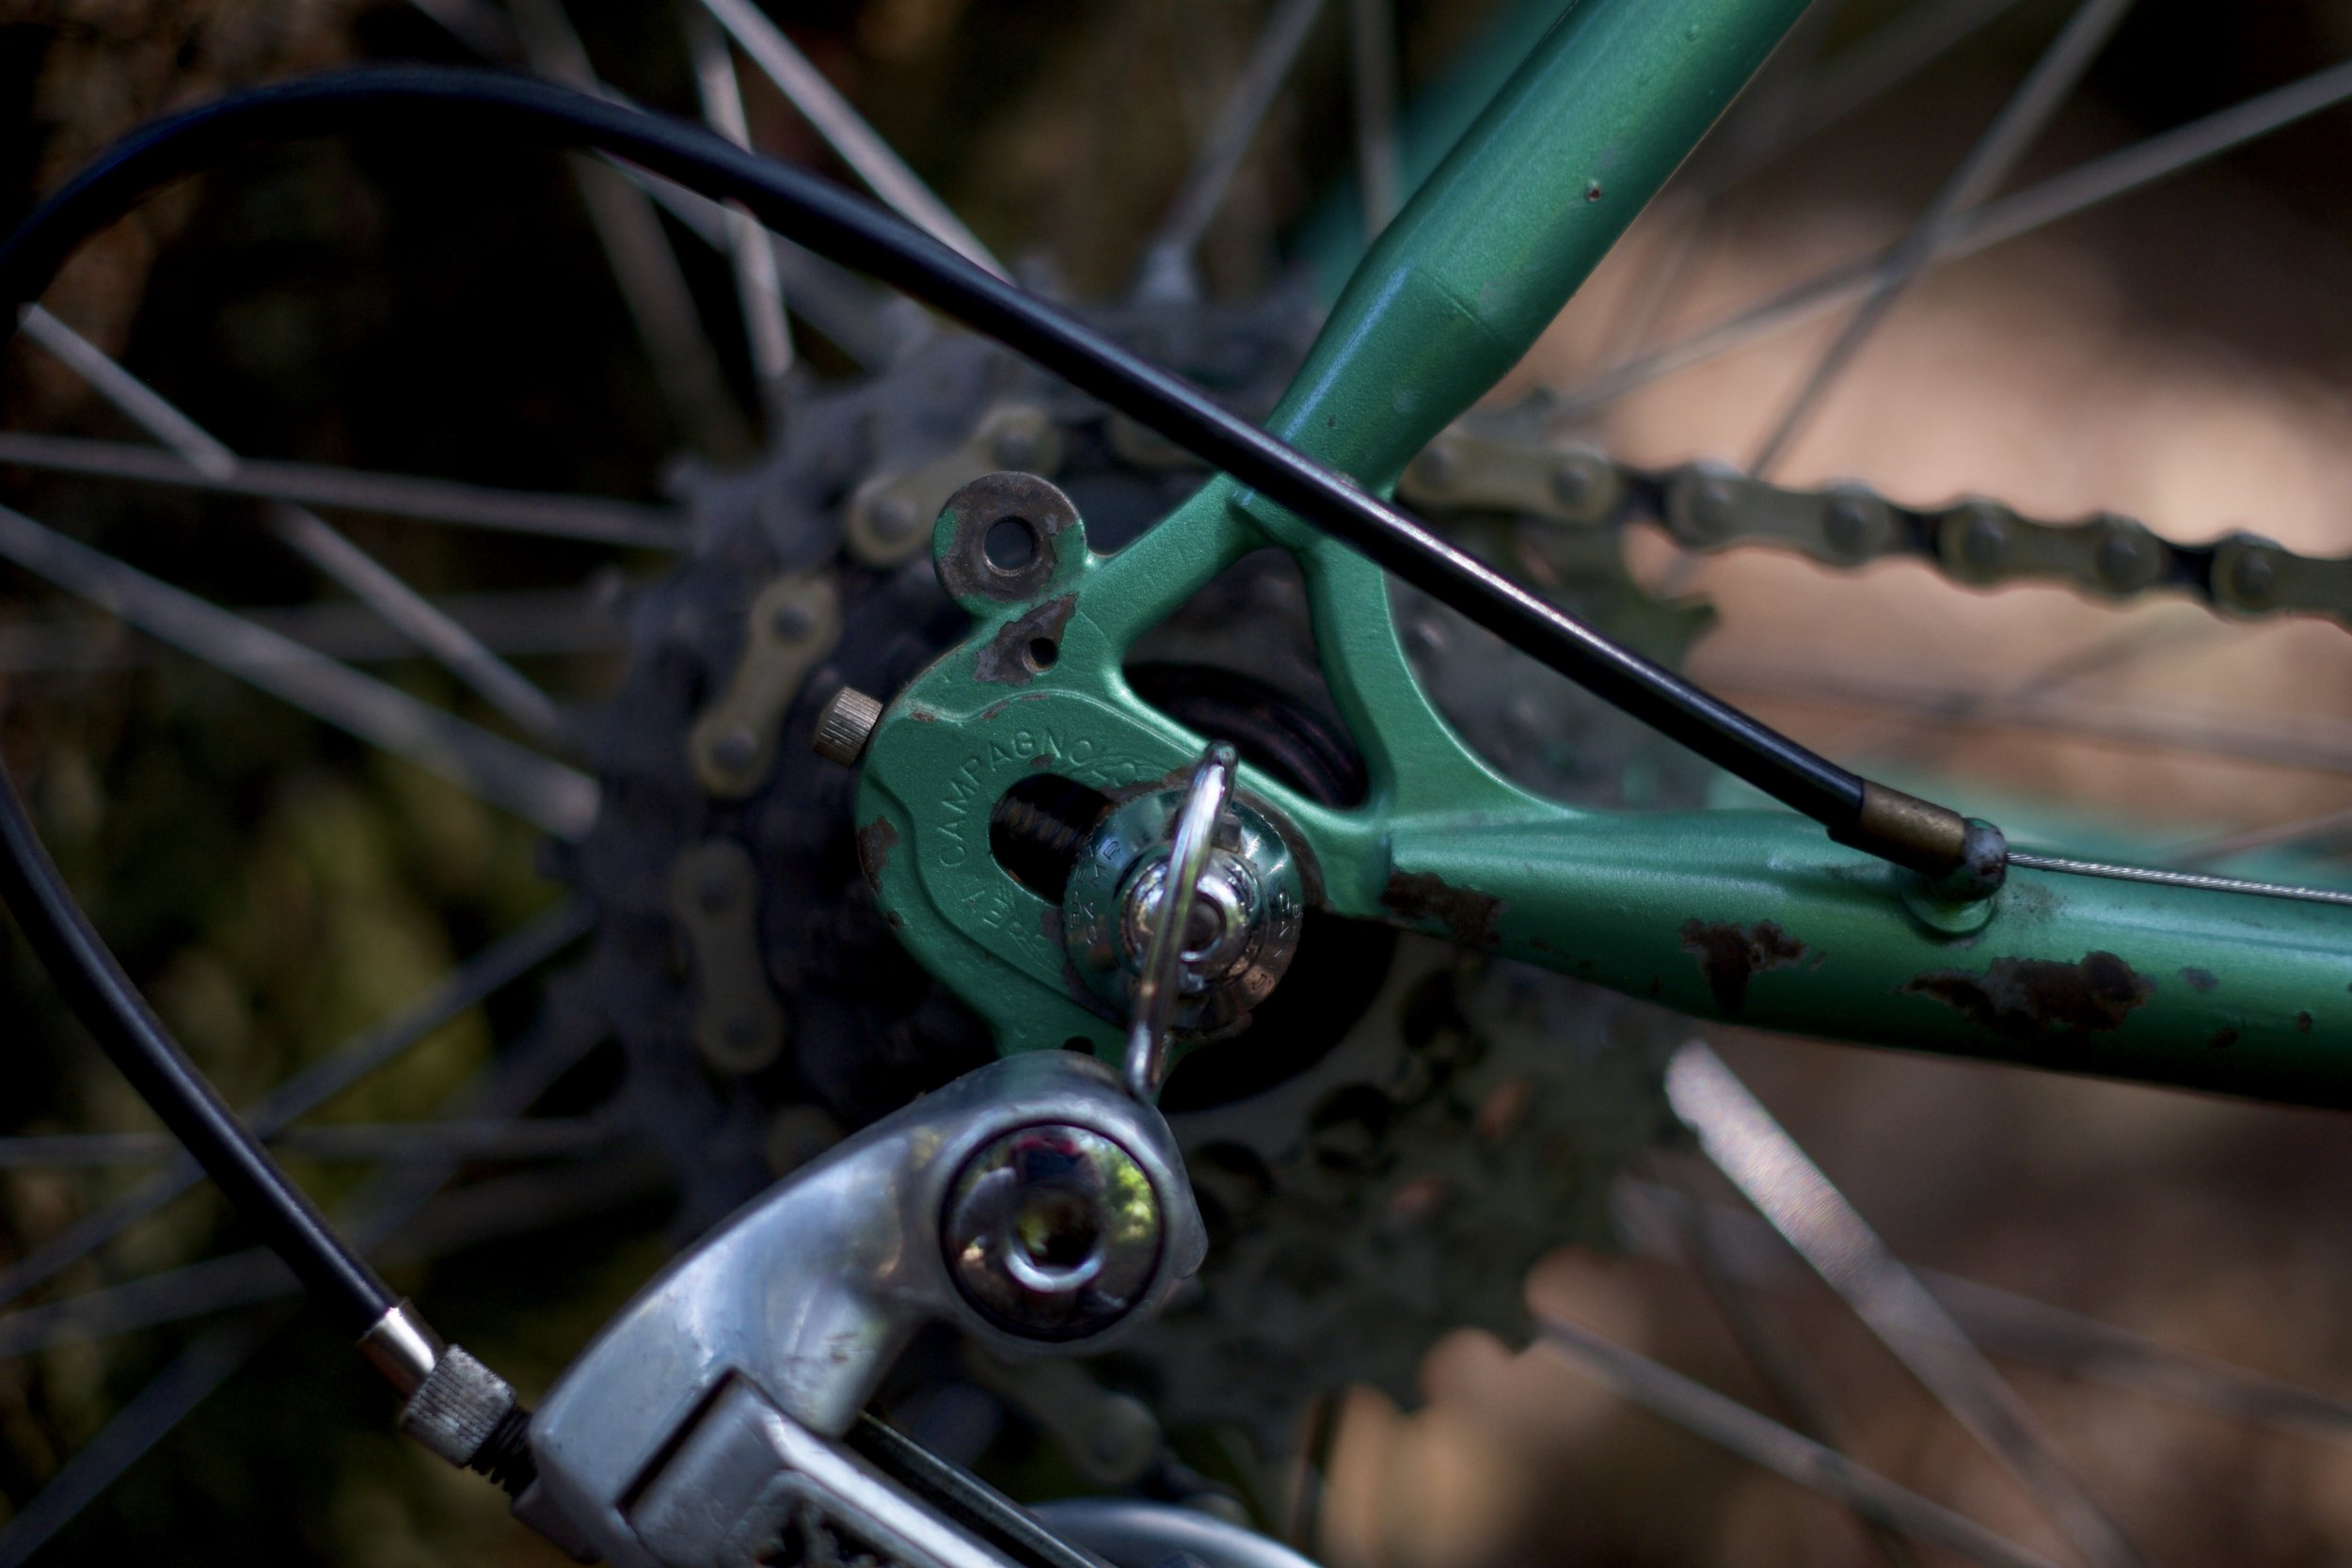 Campagnolo drop outs